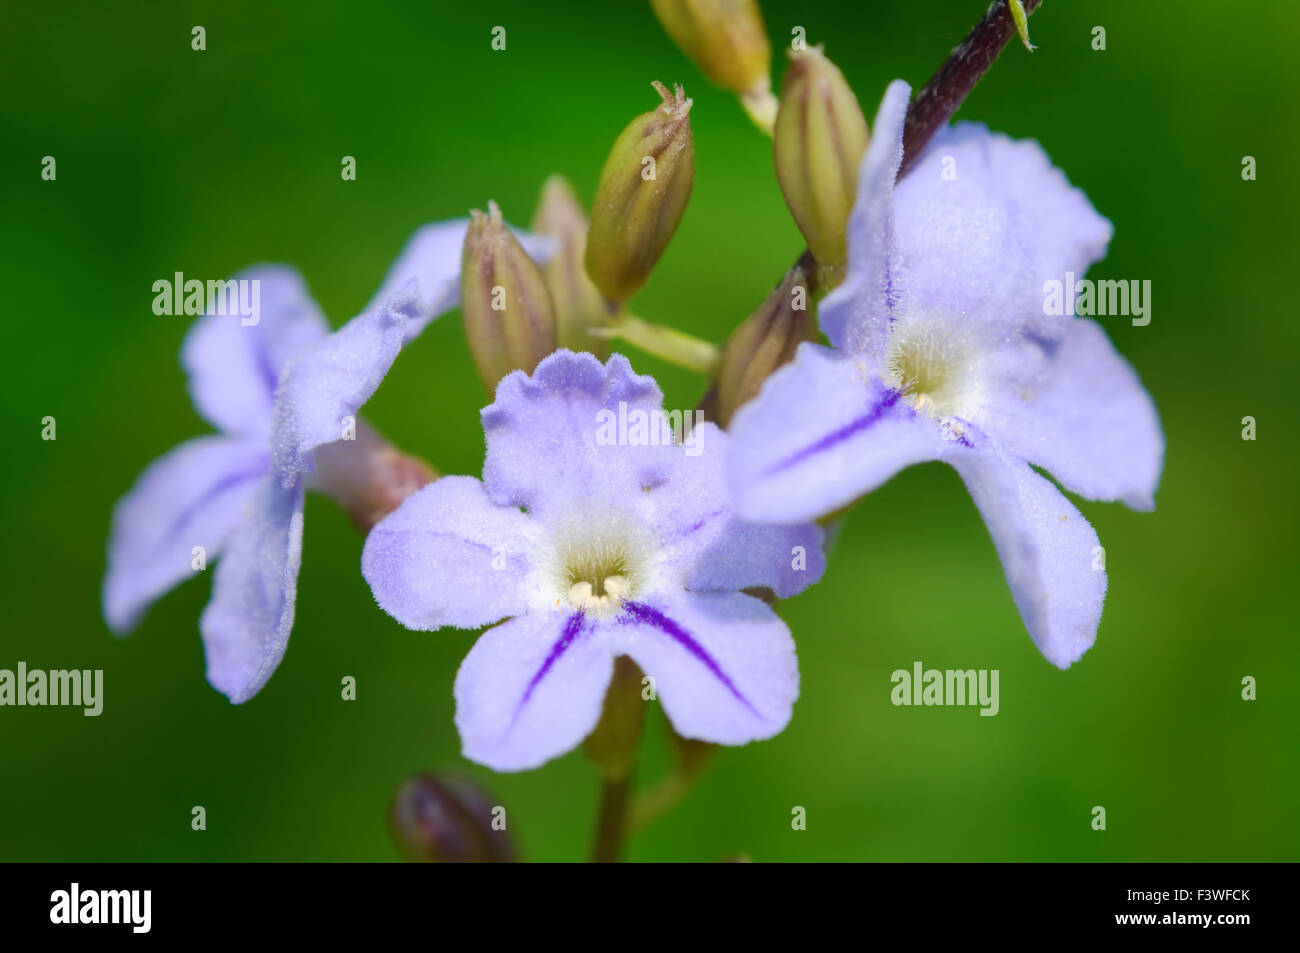 The small pinky road flowers with details - Stock Image